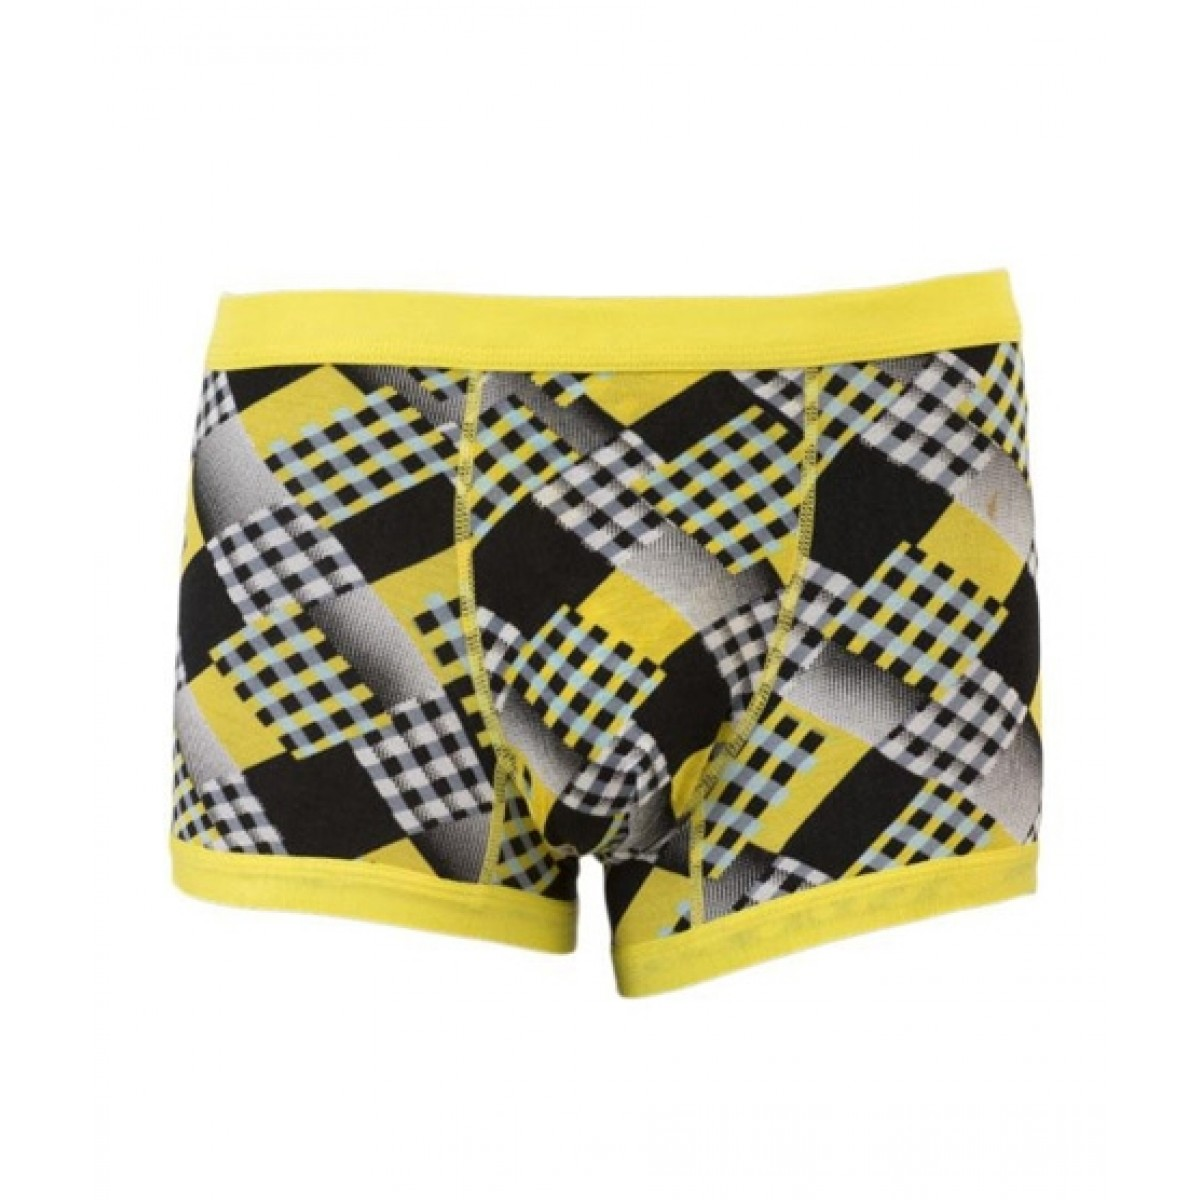 Asaan Buy Super Cotton Stretchable Fancy Boxer For Men Yellow - Pack Of 3